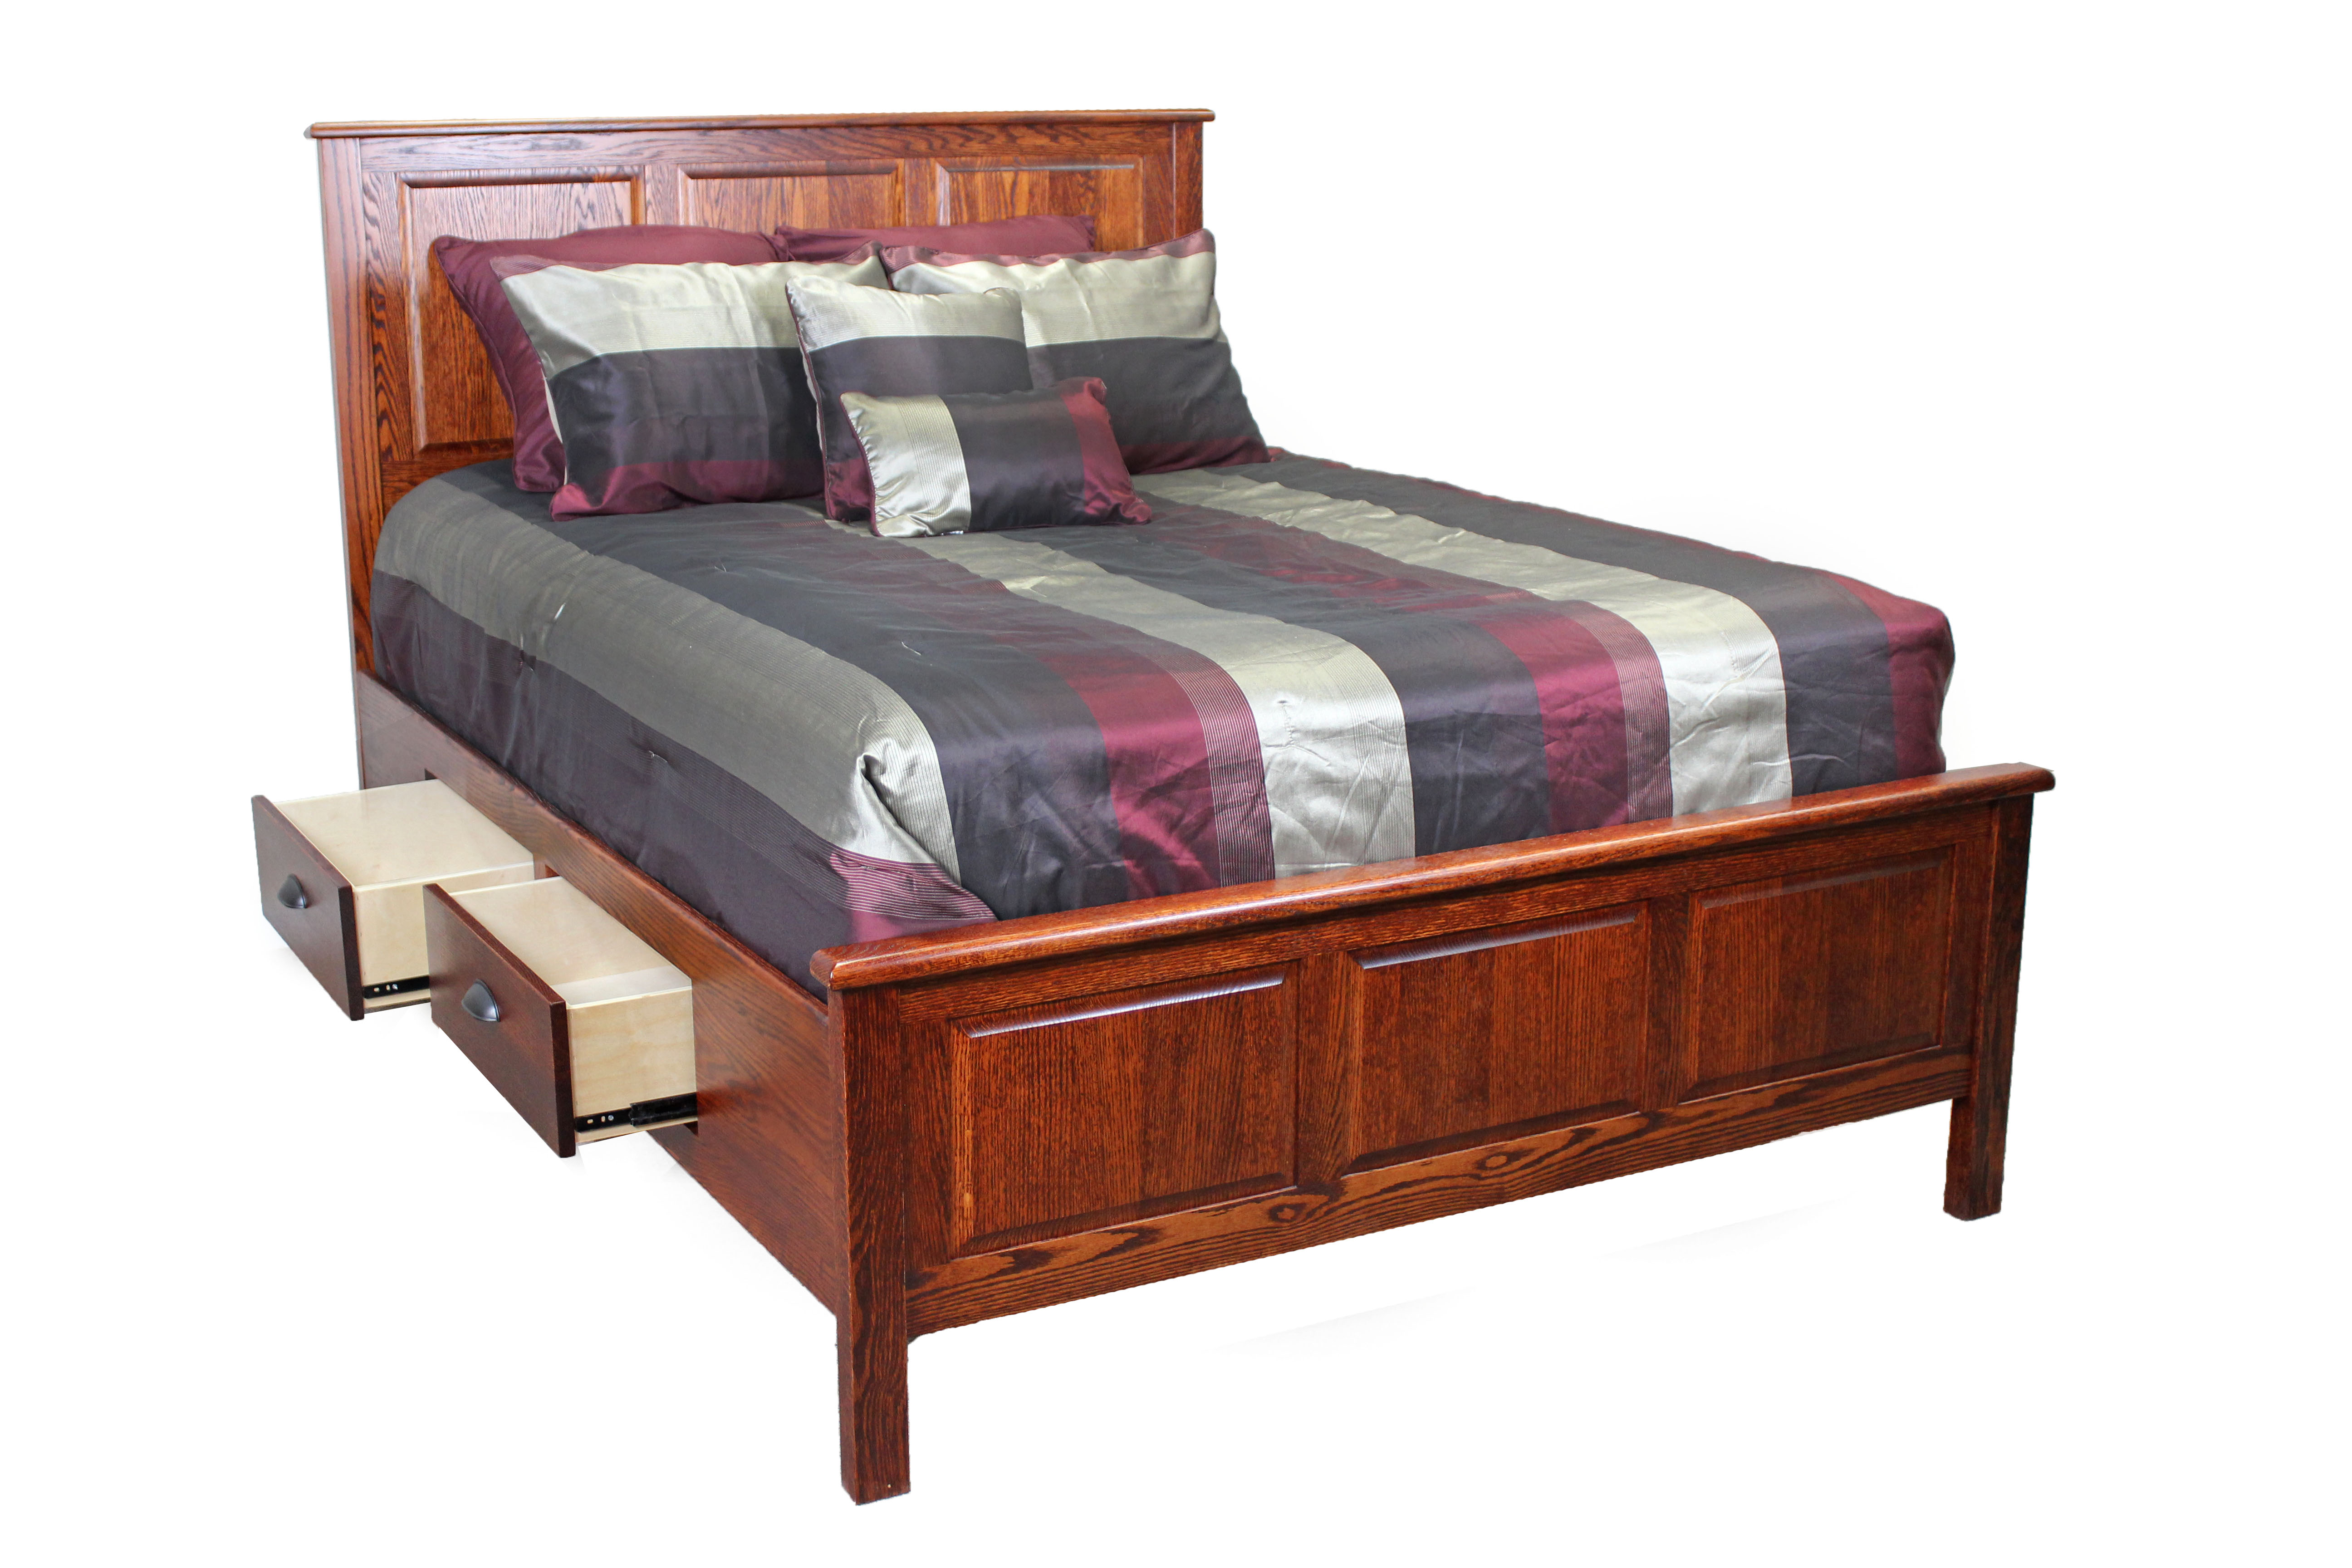 Oak Urban Queen Rail Bed w/ Storage